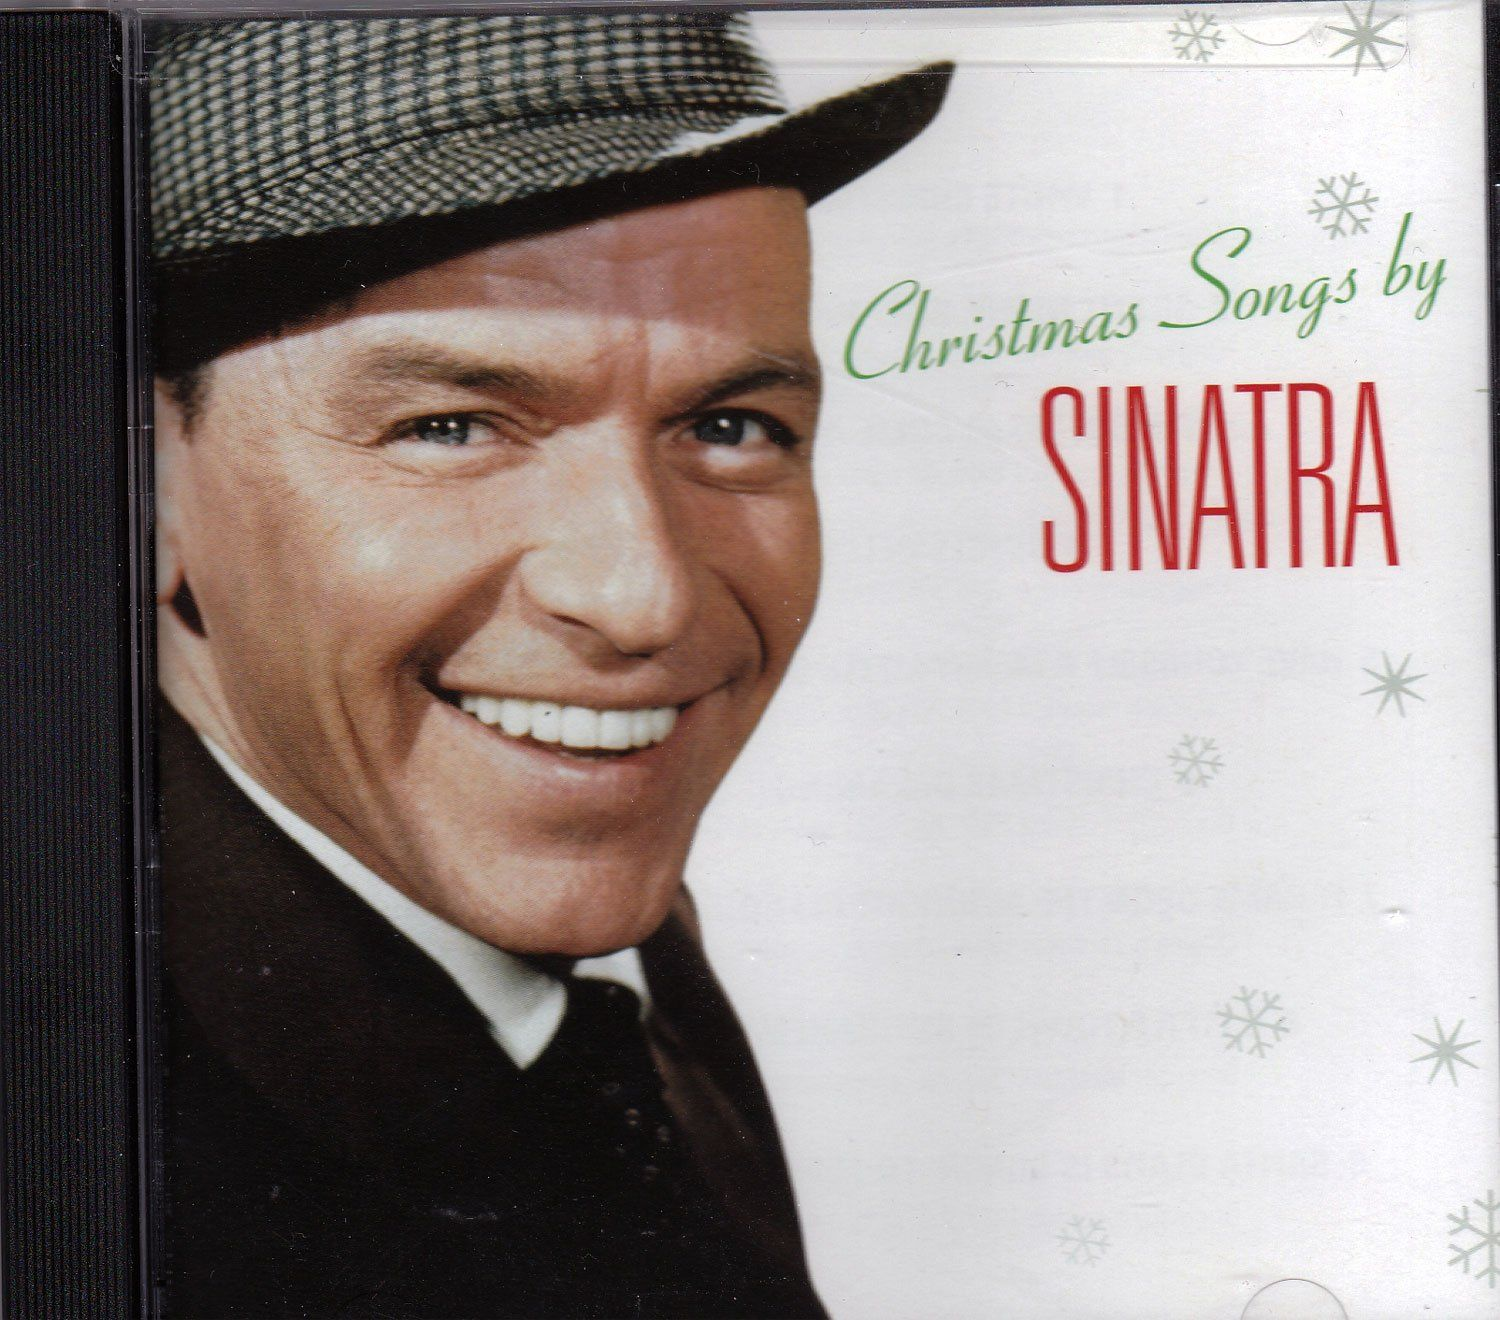 Christmas S By Sinatra